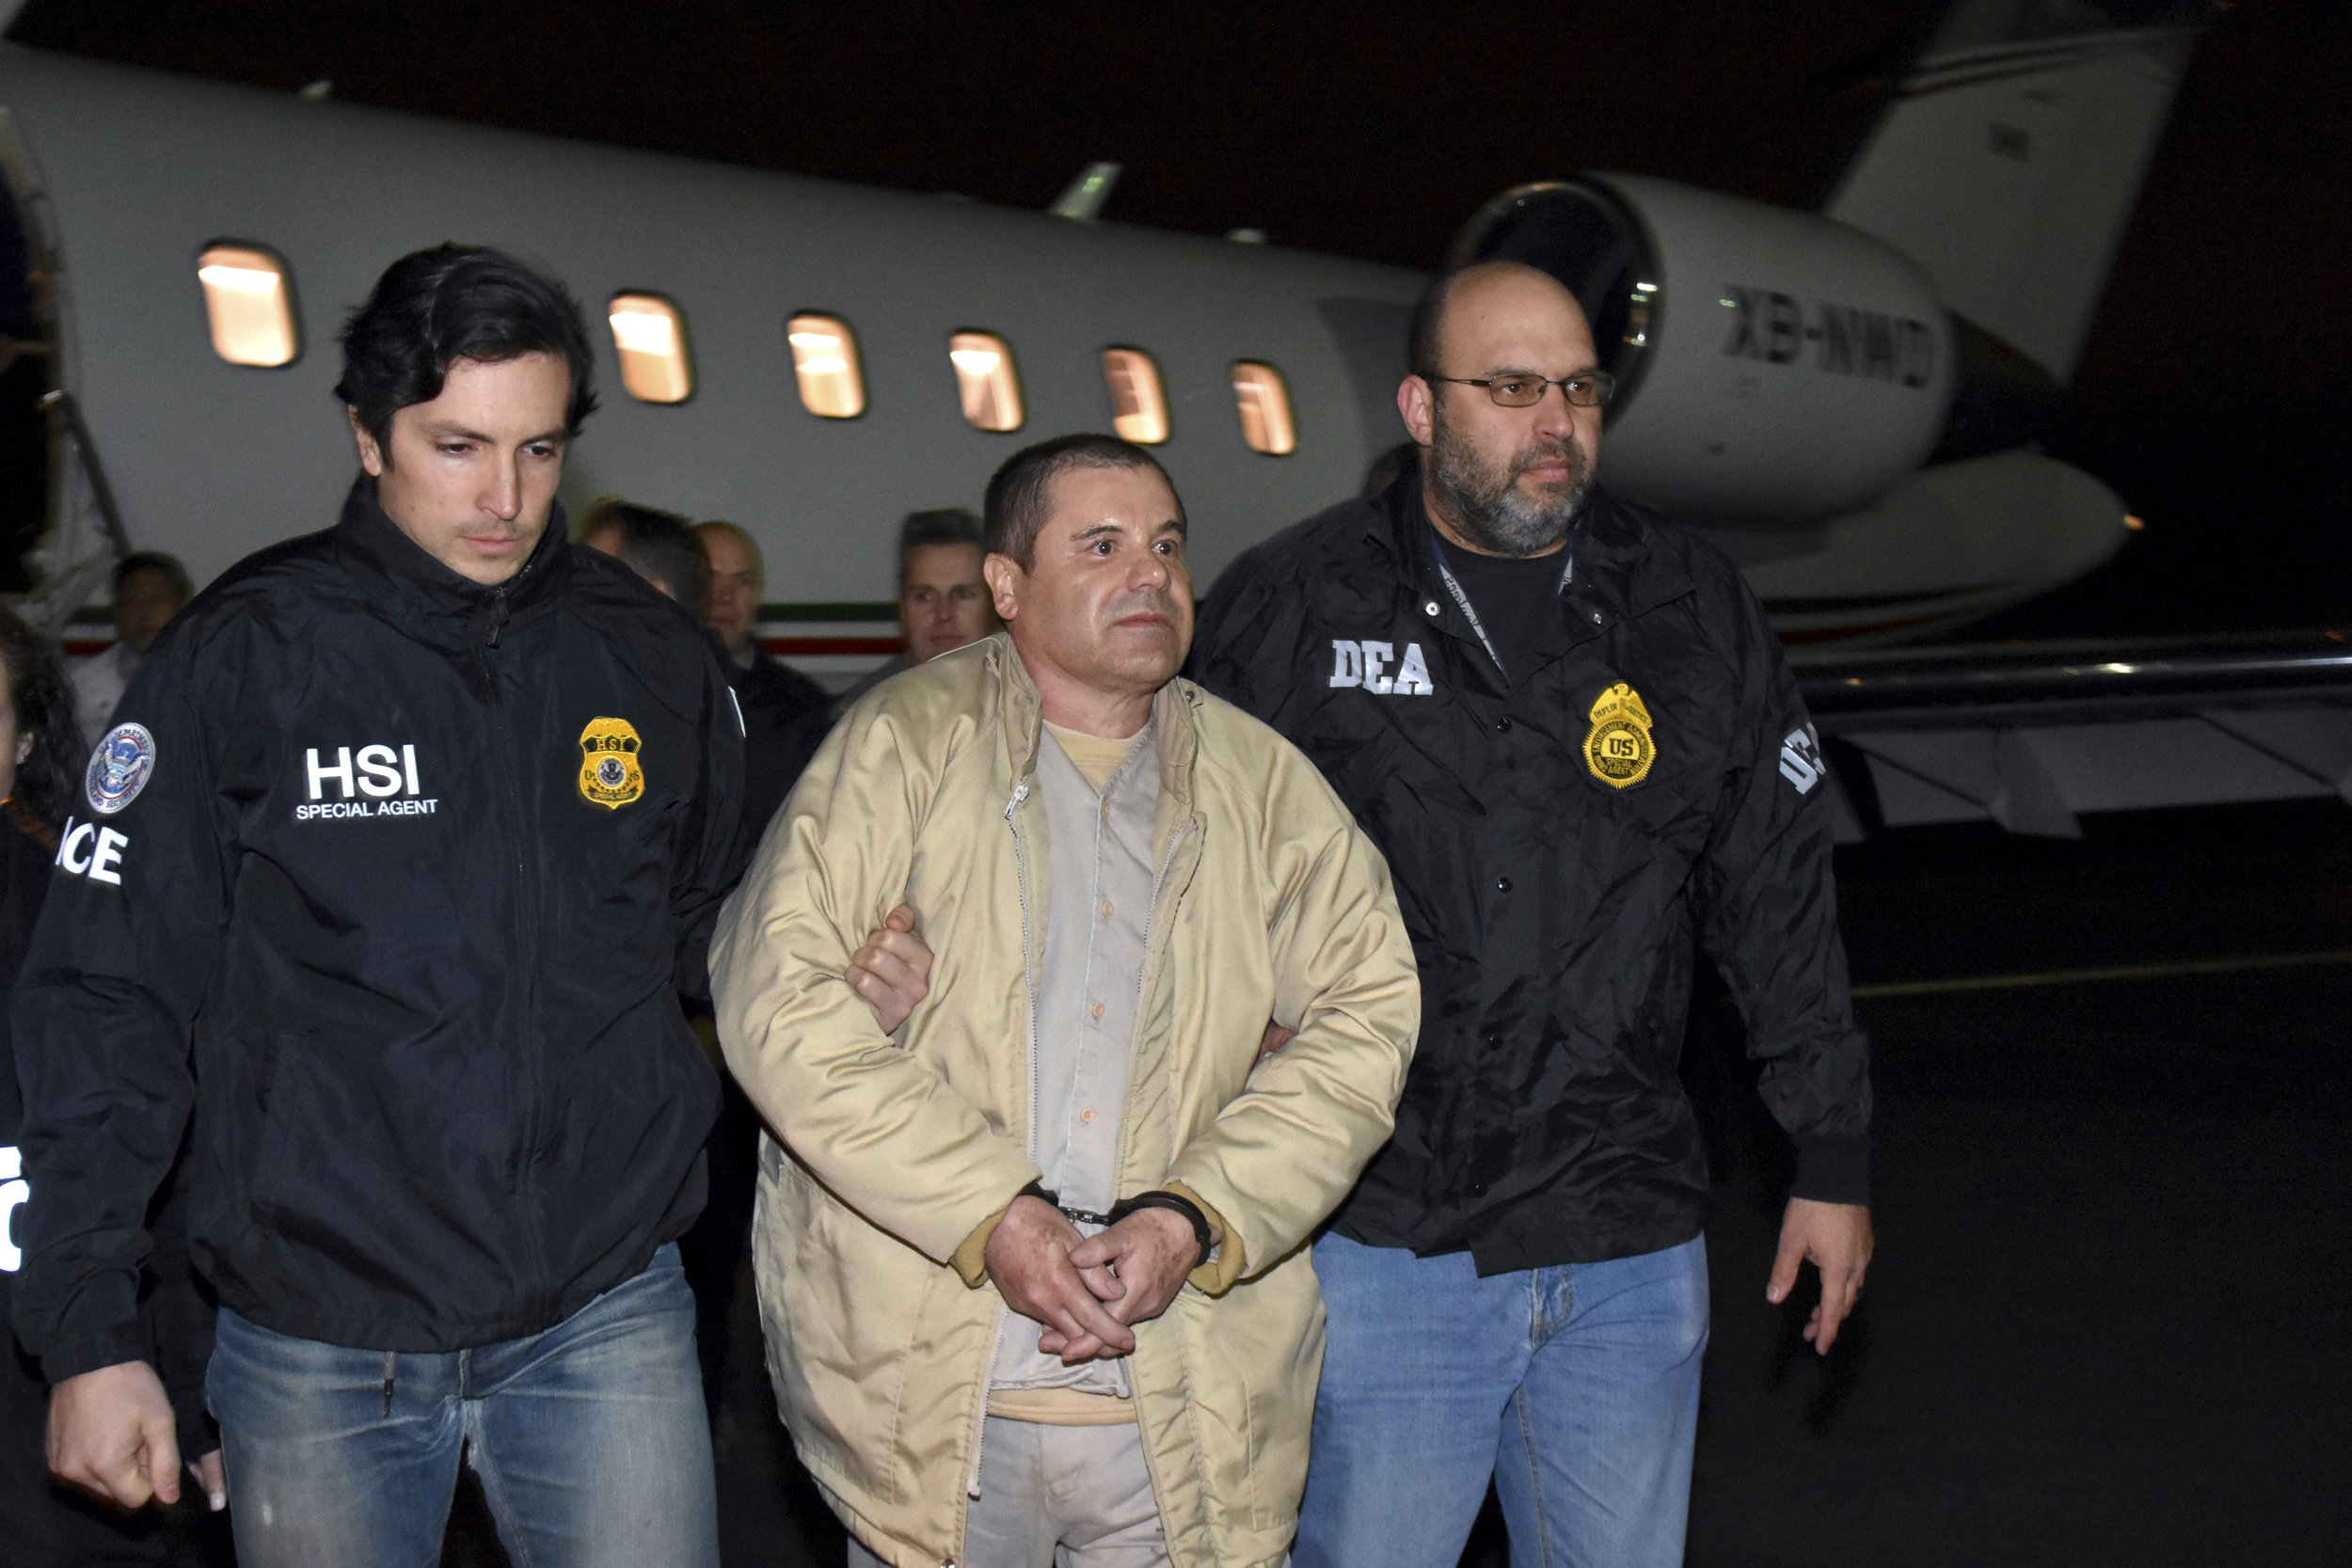 """U.S. agents escort Joaquin """"El Chapo"""" Guzman, center, from a plane to a waiting caravan of SUVs at Long Island MacArthur Airport, in Ronkonkoma, N.Y. in 2017. AP File Photo."""